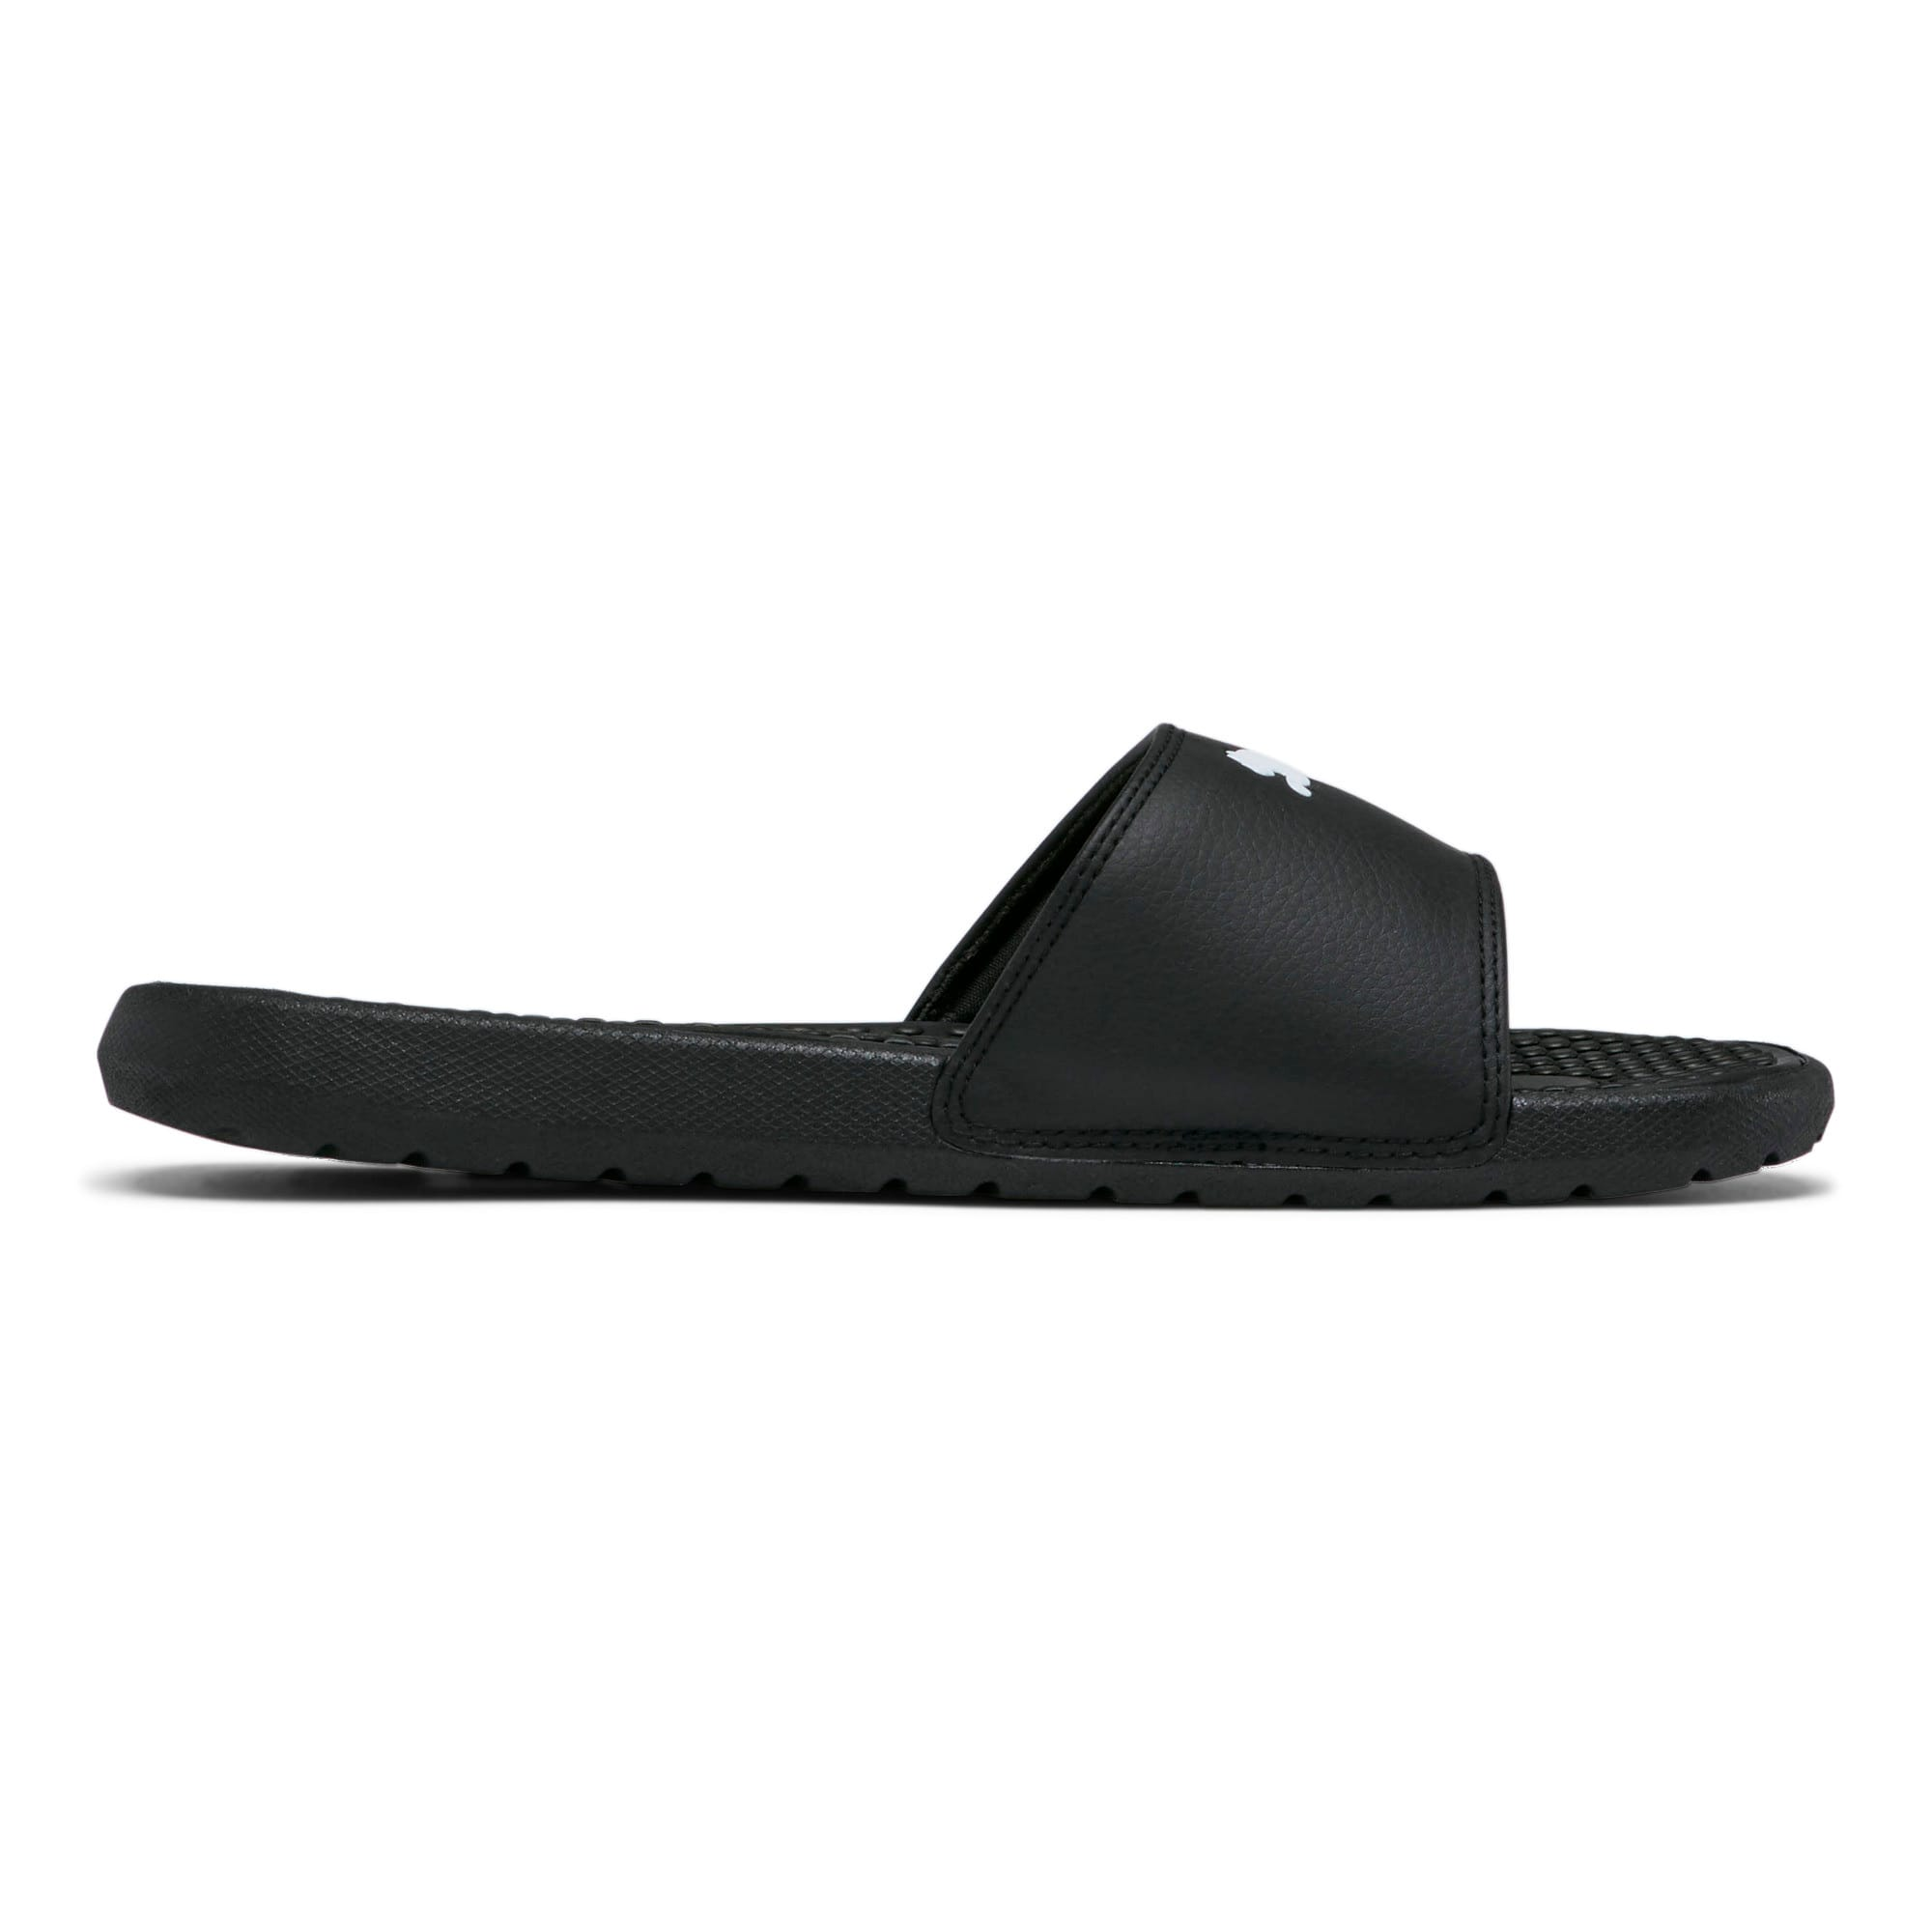 Thumbnail 4 of Cool Cat Sport Women's Slides, Puma Black-Puma White, medium